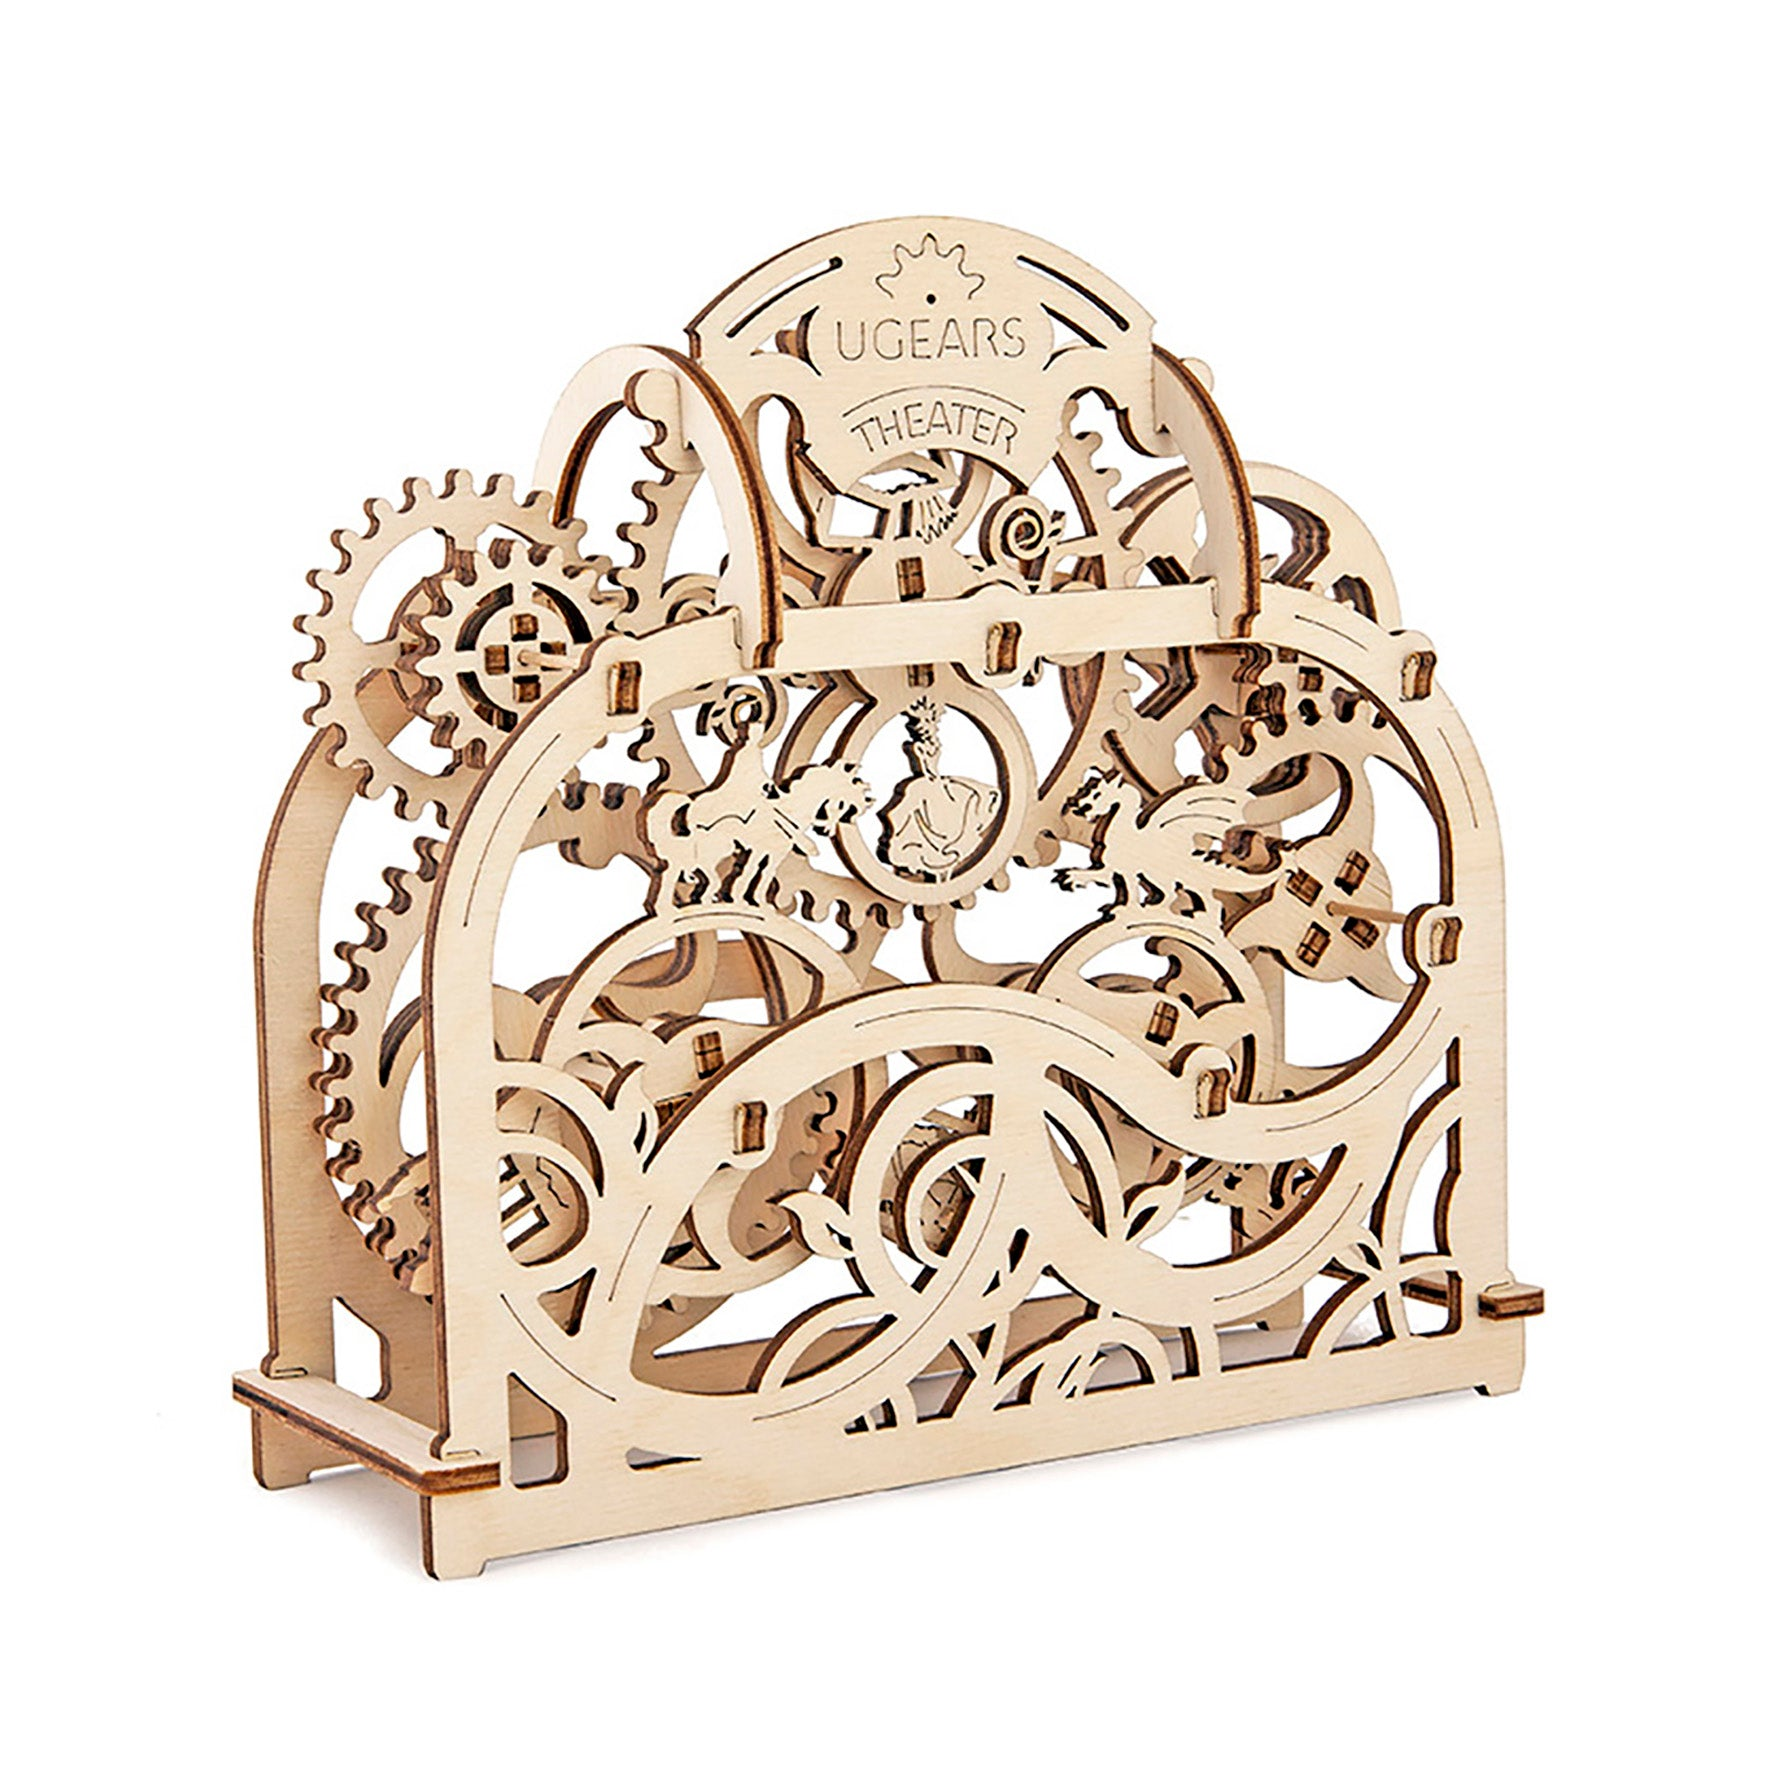 Puzzle 3D madera Ugears  - Teatro